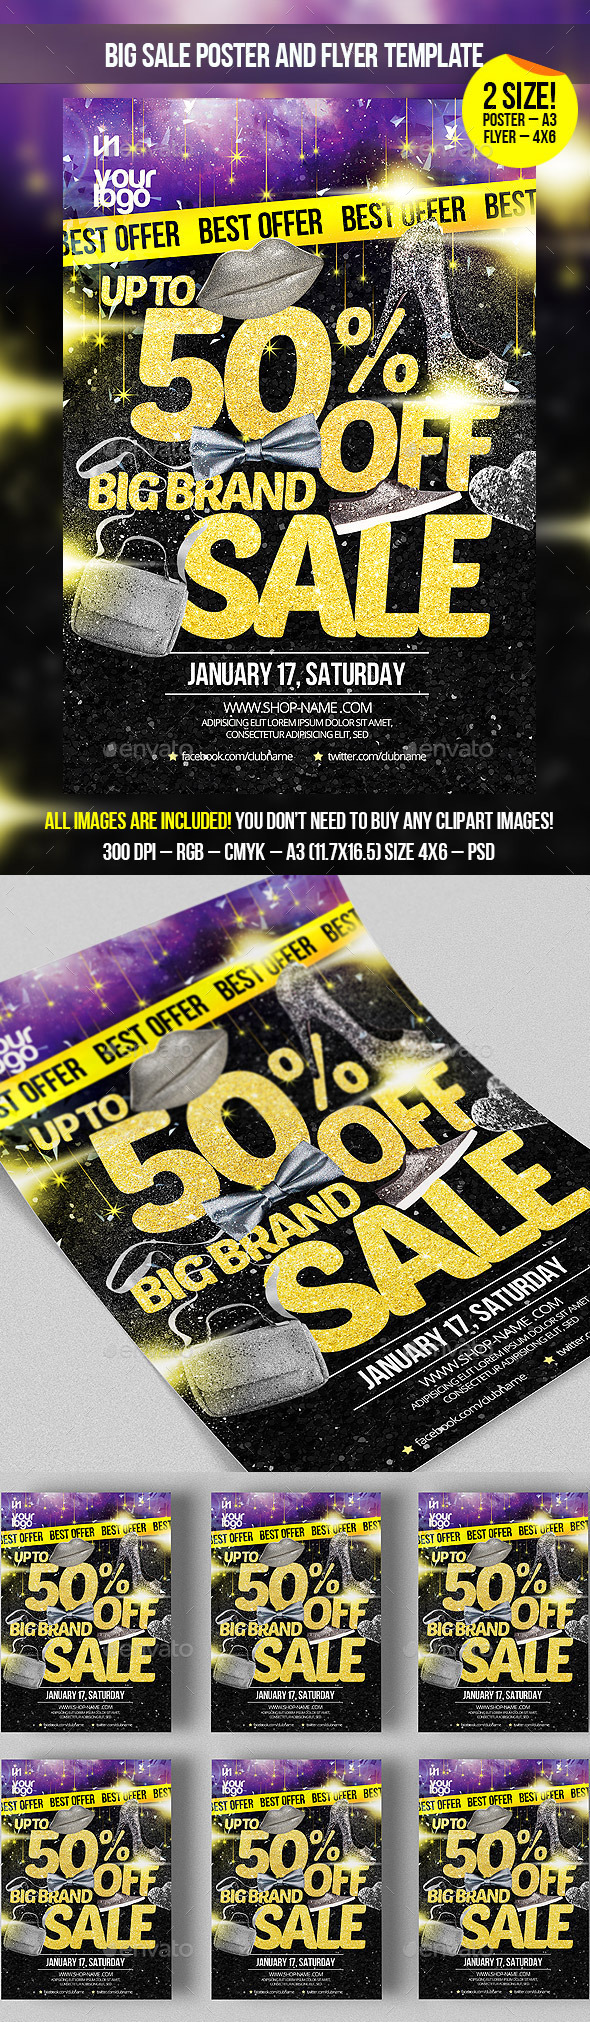 GraphicRiver Big Sale Poster and Flyer Template 9845713